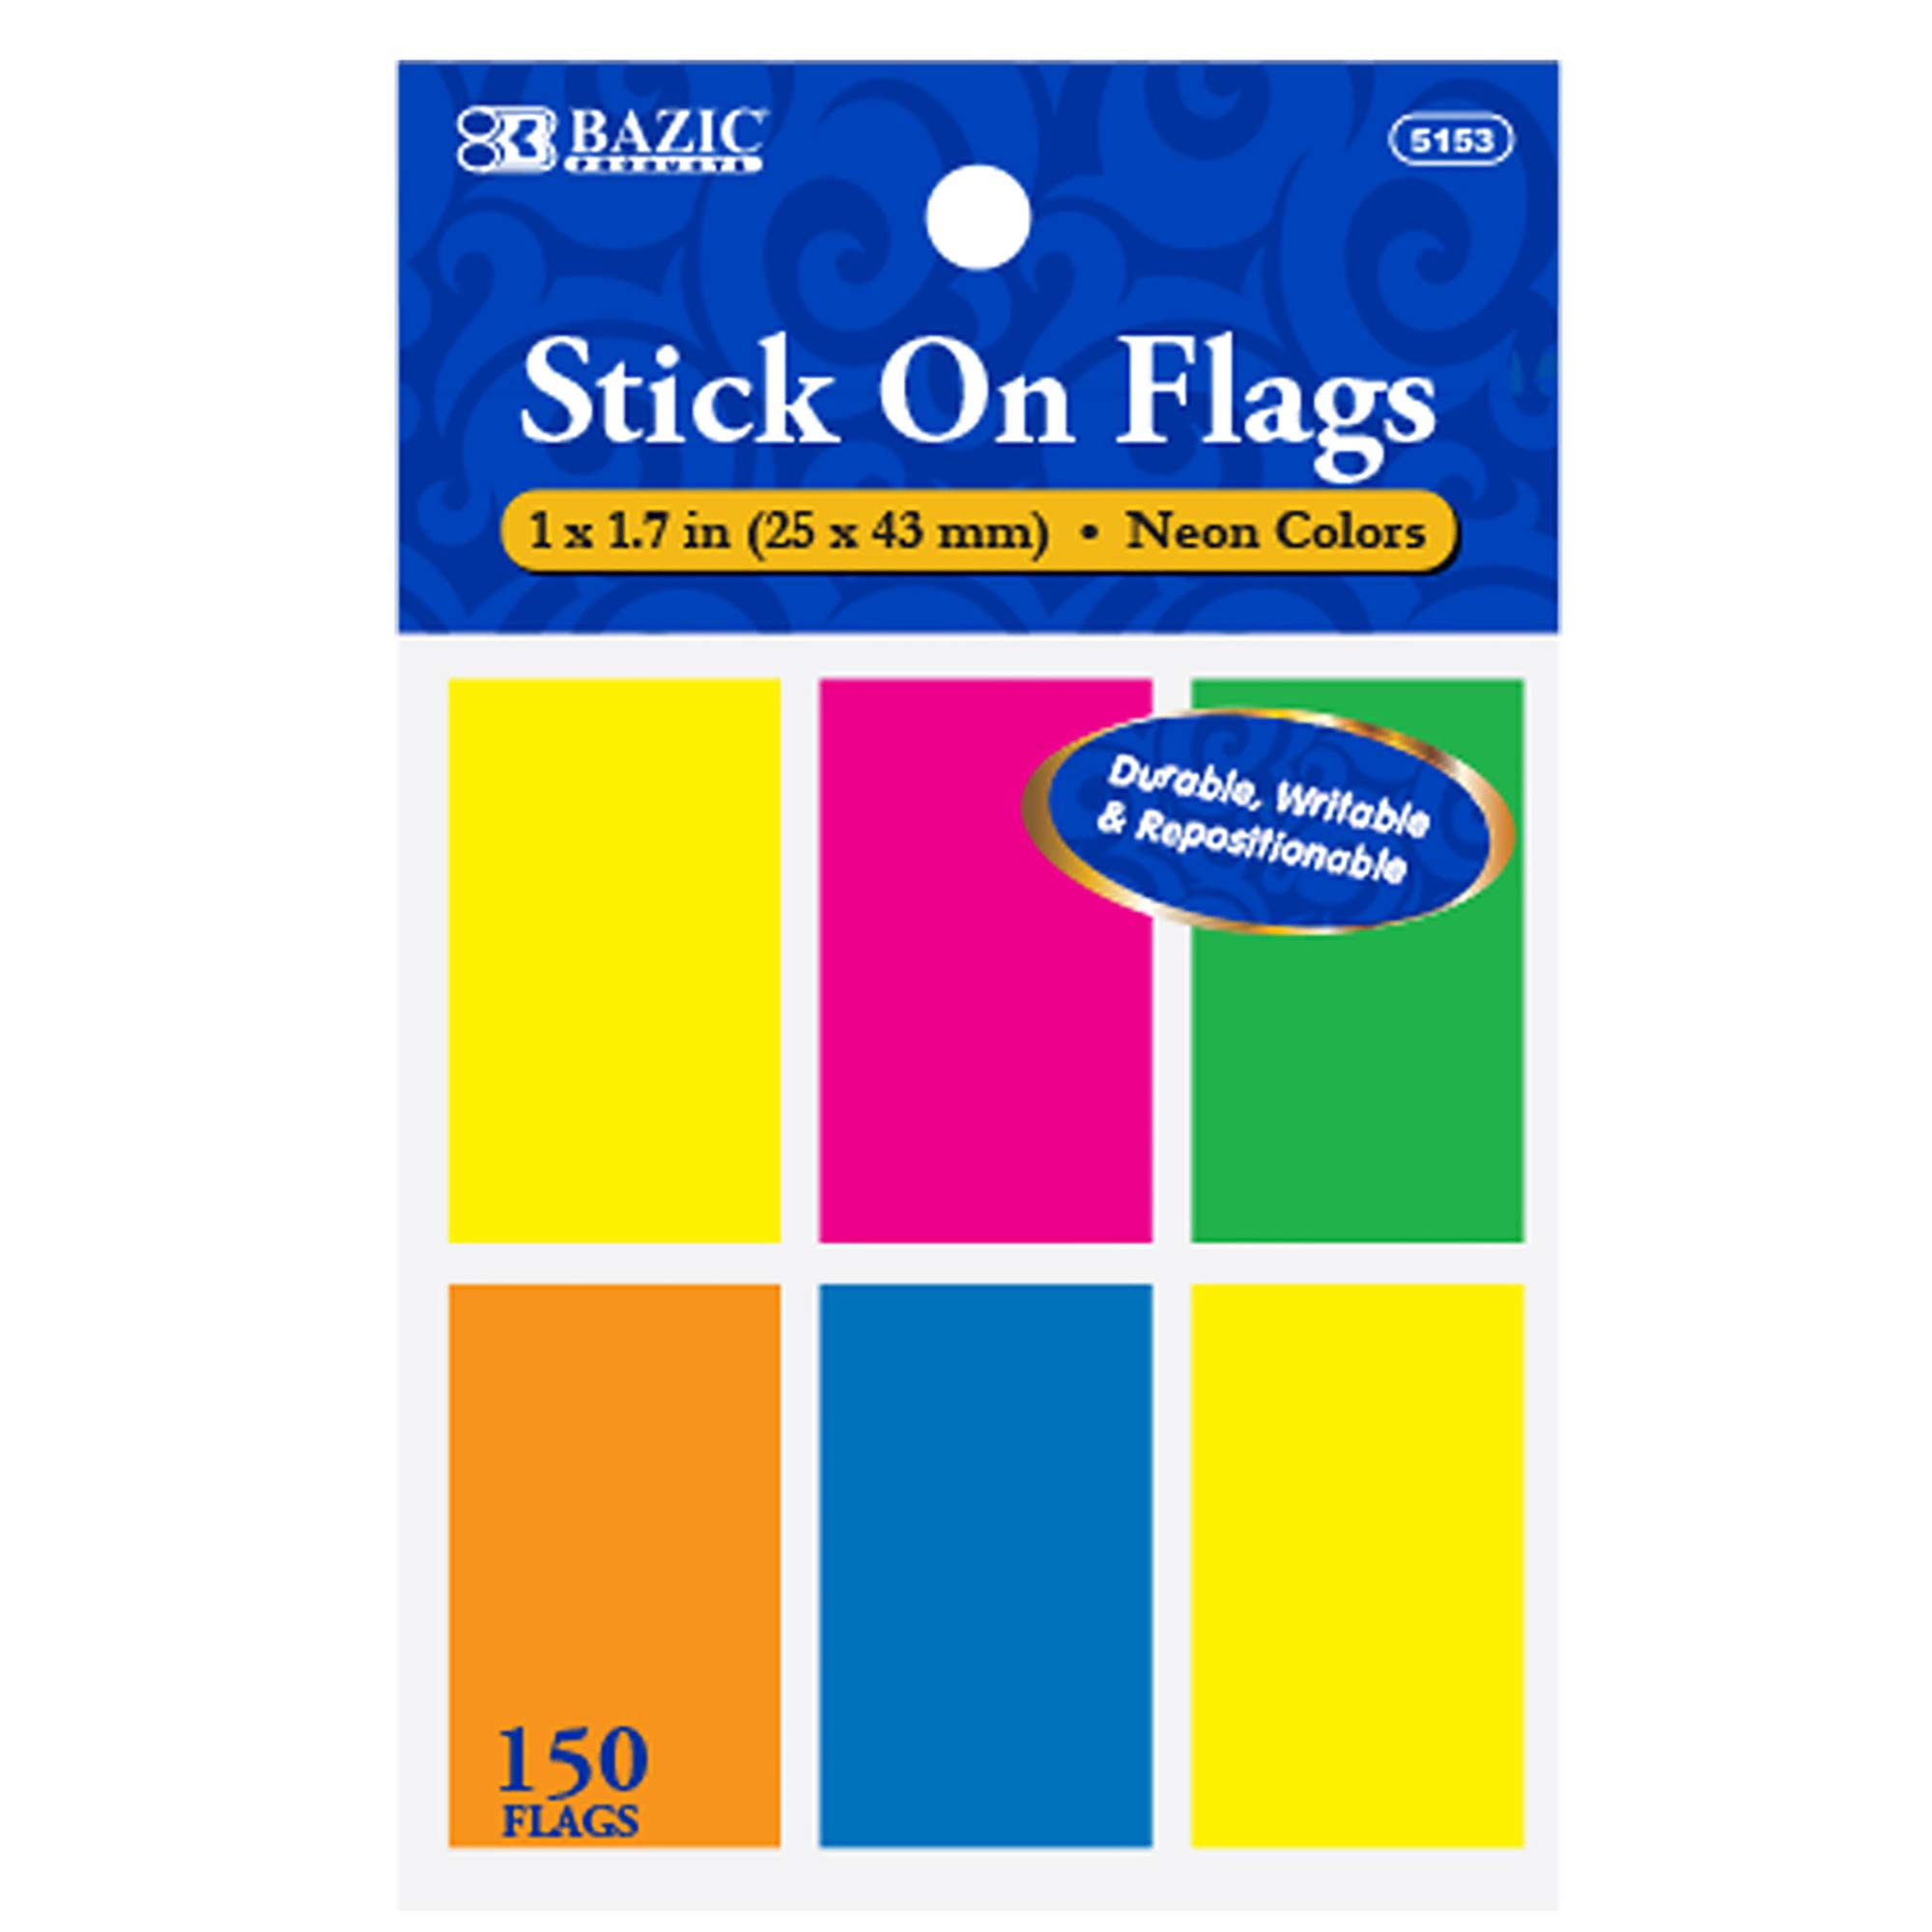 BAZIC 25 Ct. 1'' X 1.7'' Neon Color Standard Flags (6/Pack) (Box of 24) by B BAZIC PRODUCTS